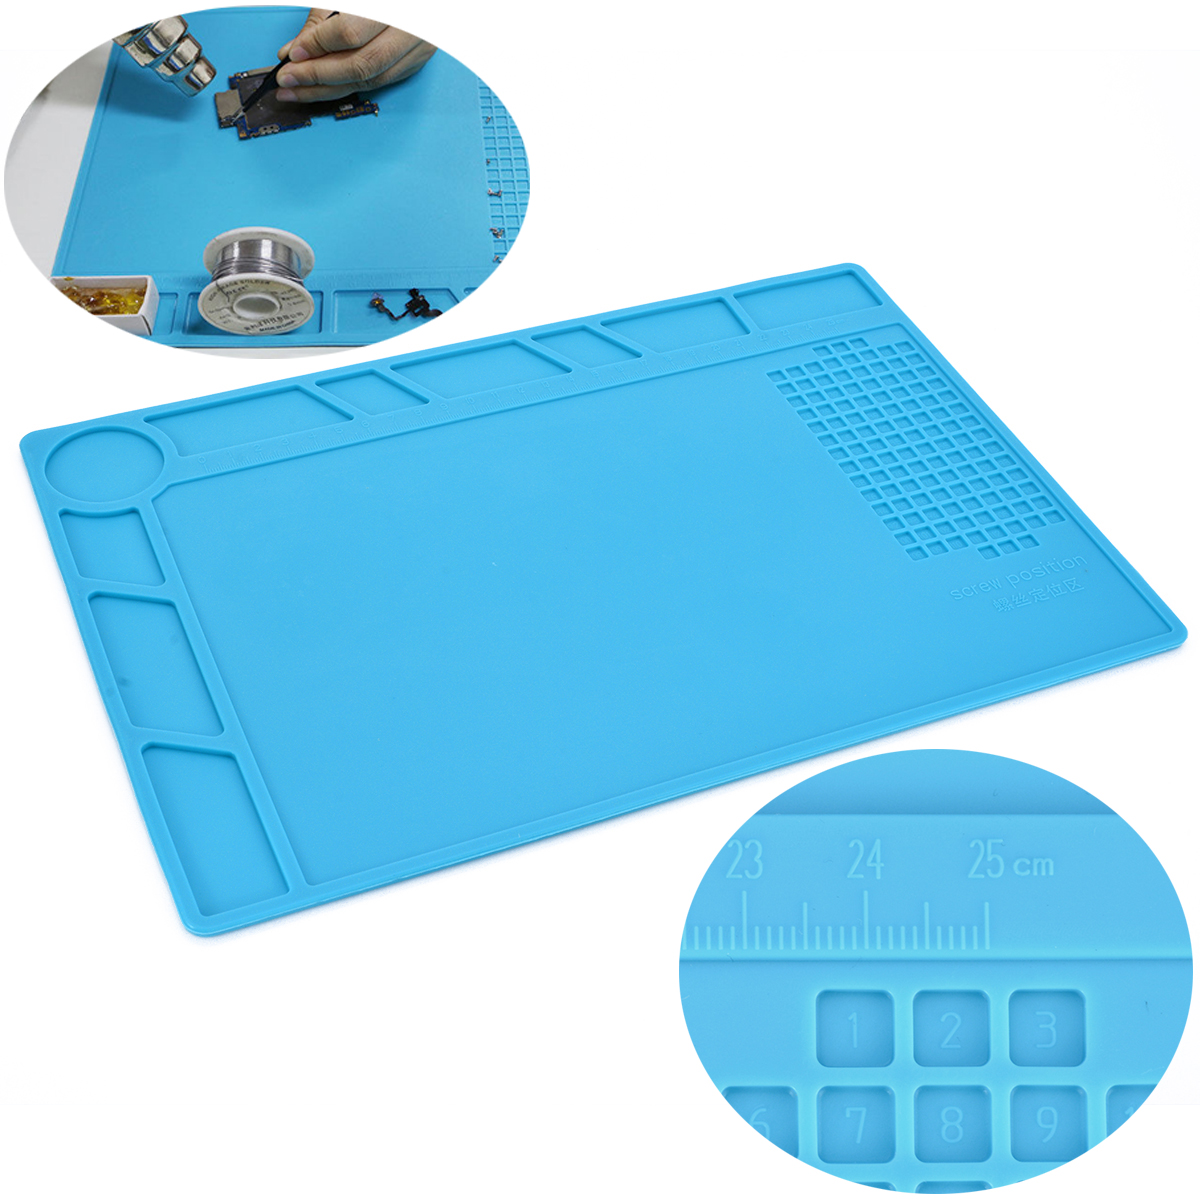 цена на Insulation Silicone Soldering Mat Heat Resistant Pad With High Temperature Resistant Multifunction Repair Tool 35x25cm